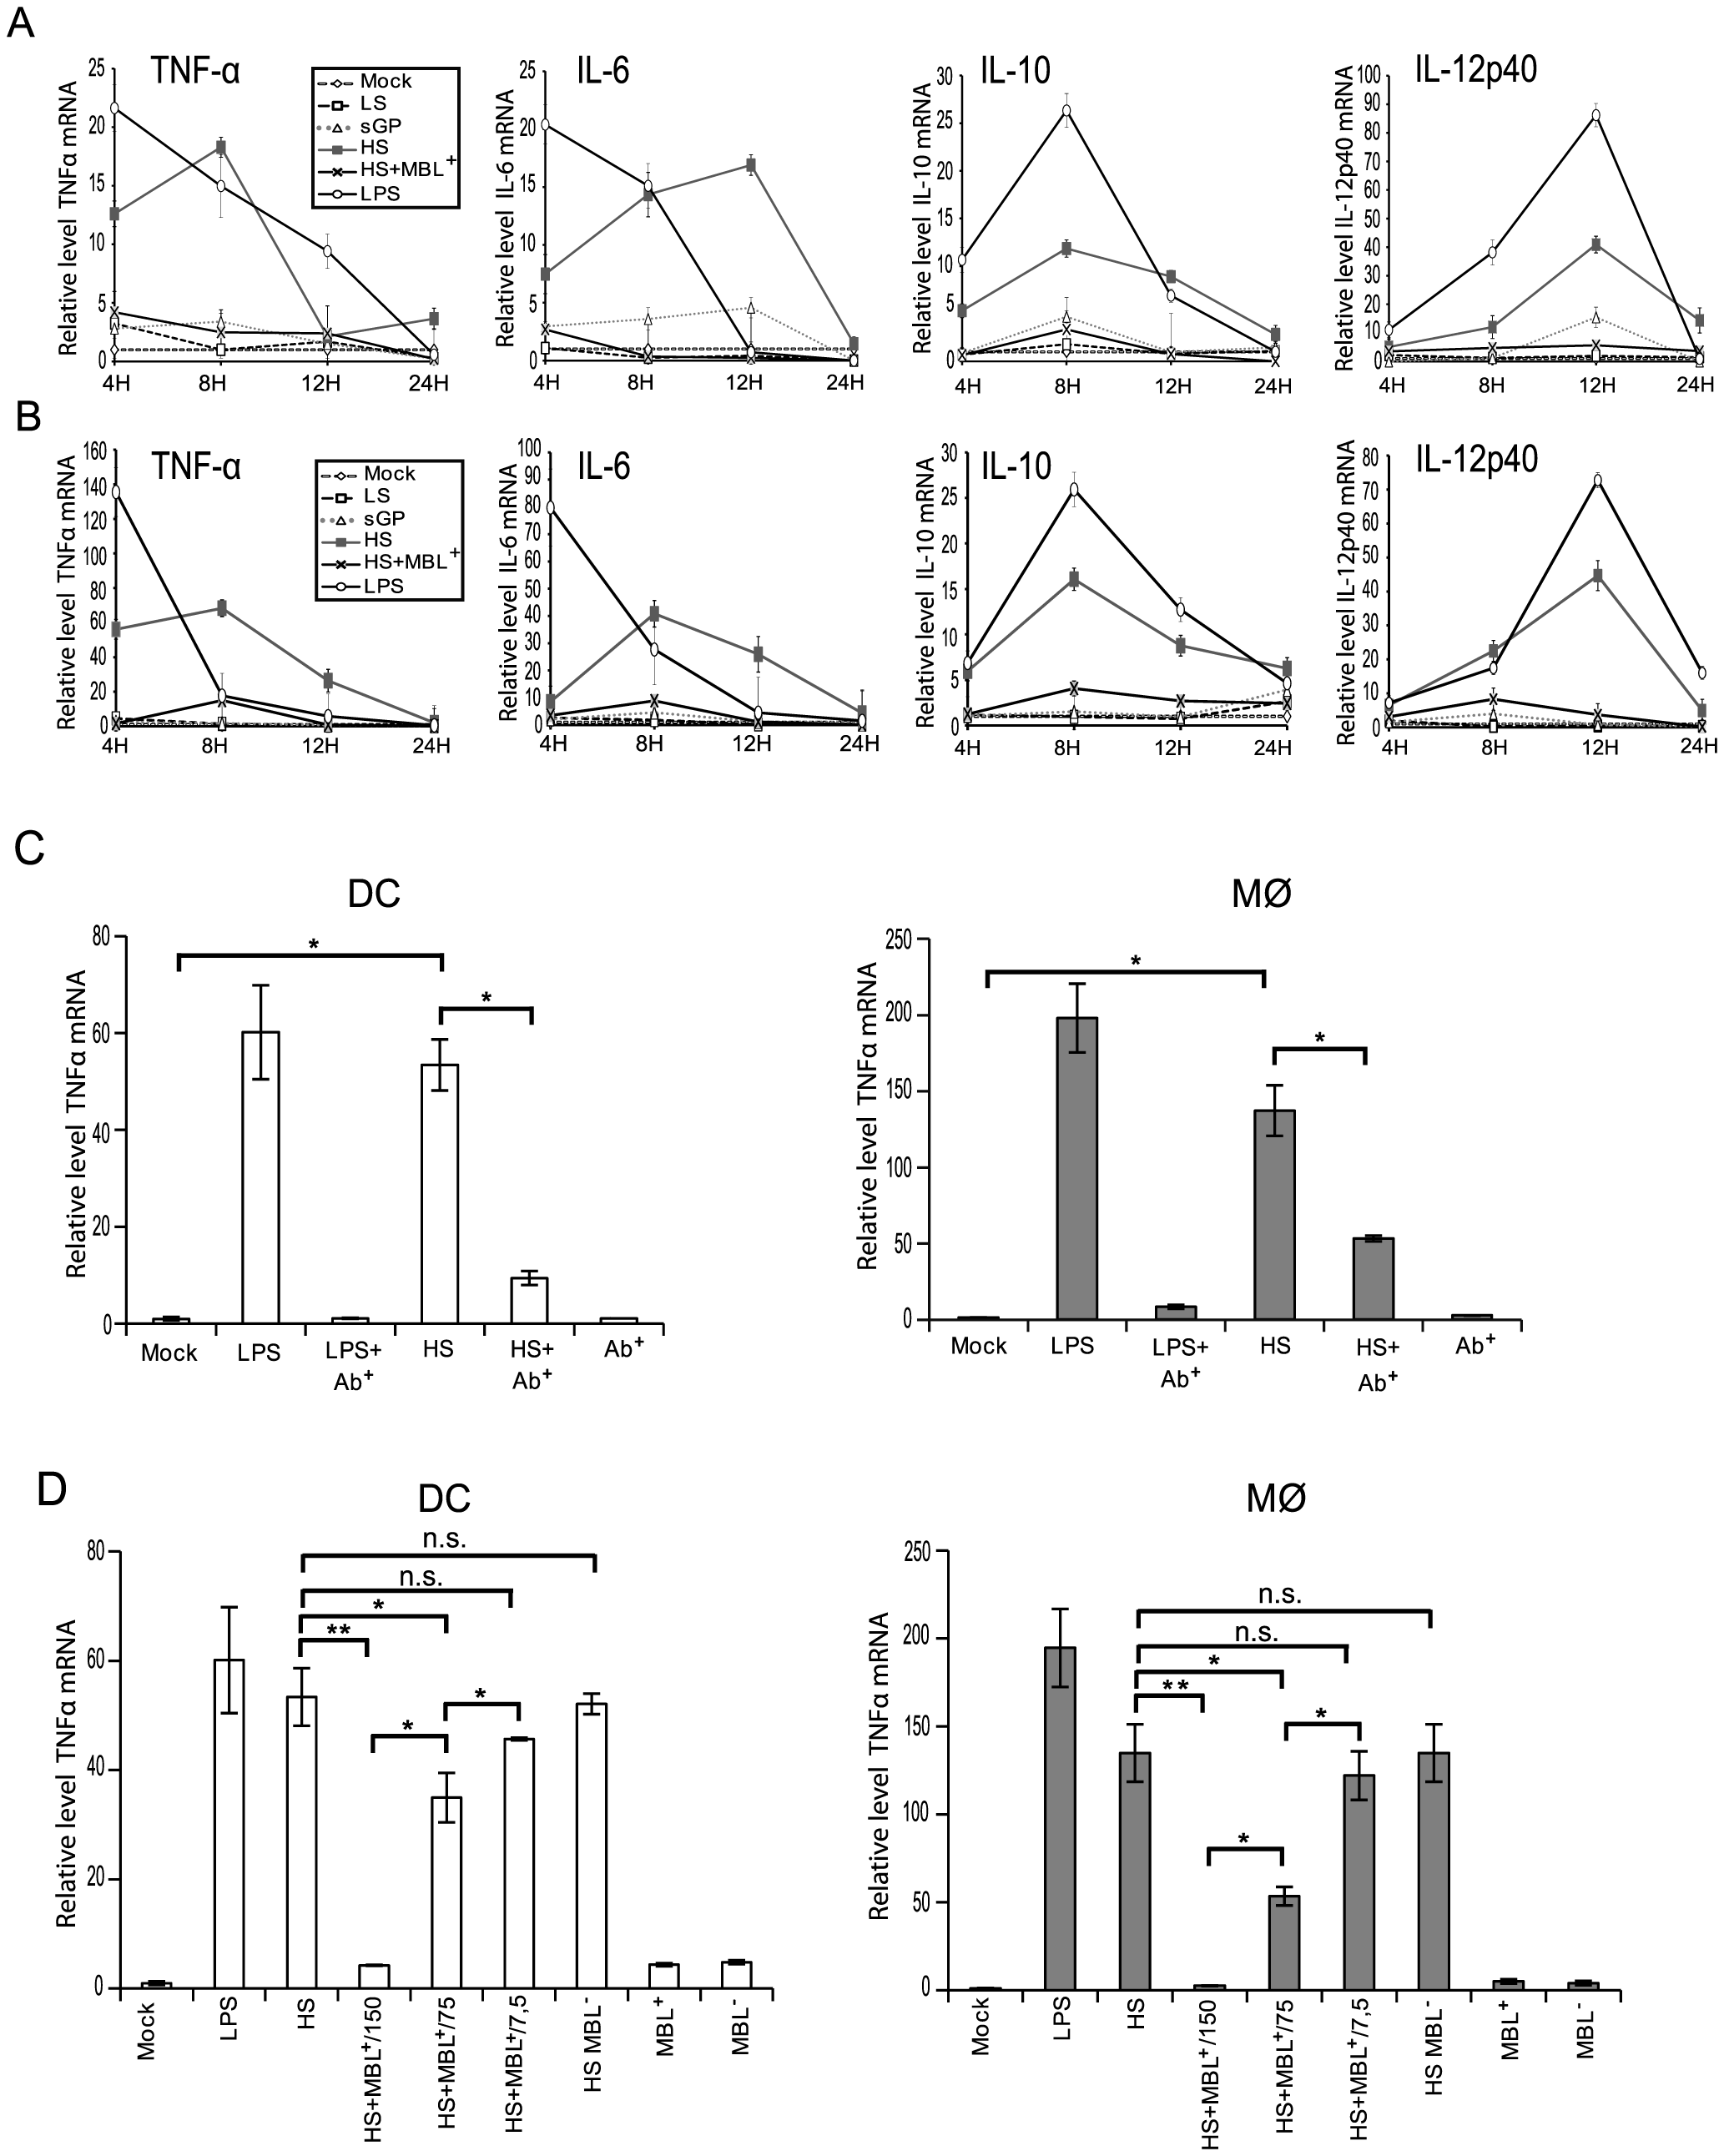 Shed GP induces transcriptional activation of cytokines in DCs and MØ.